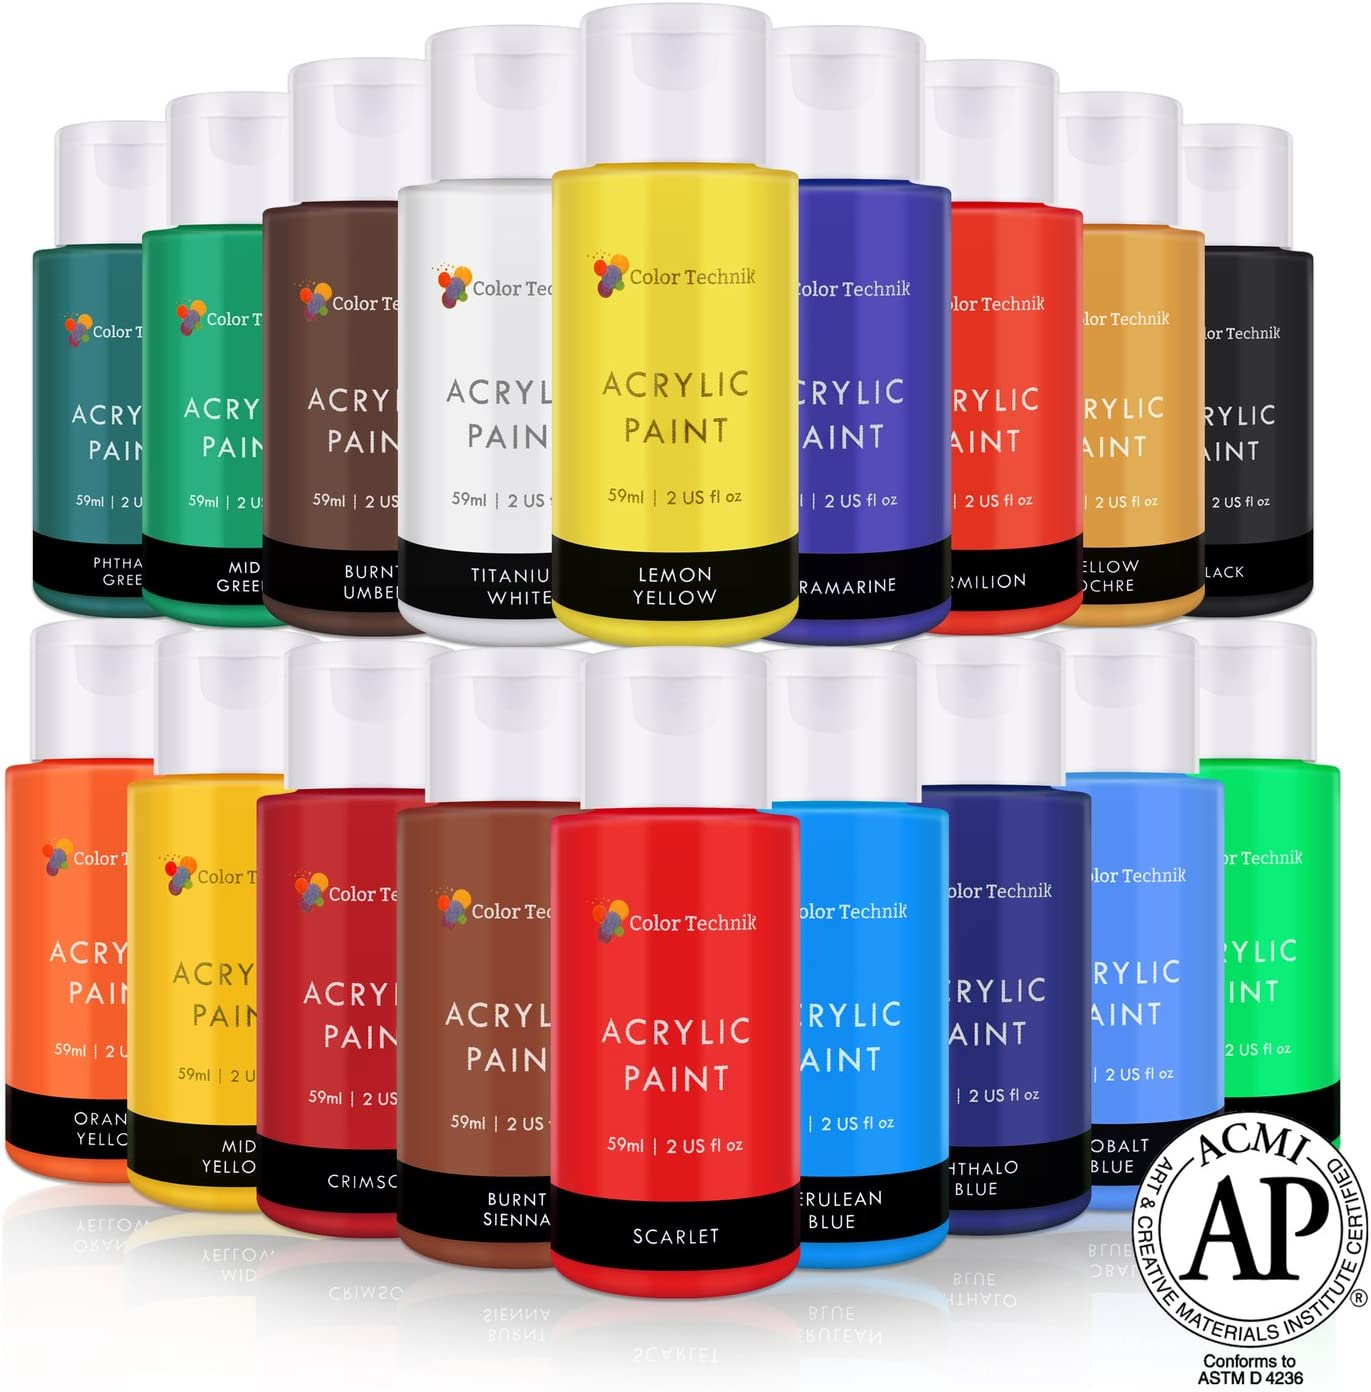 Acrylic Paint Set By Color Technik, Artist Quality, LARGE SET - 18x59ml (2-Ounce) Bottles, Best Colors For Painting Canvas, Wood, Clay, Fabric, Nail Art & Ceramic, Rich Pigments, Heavy Body, GIFT